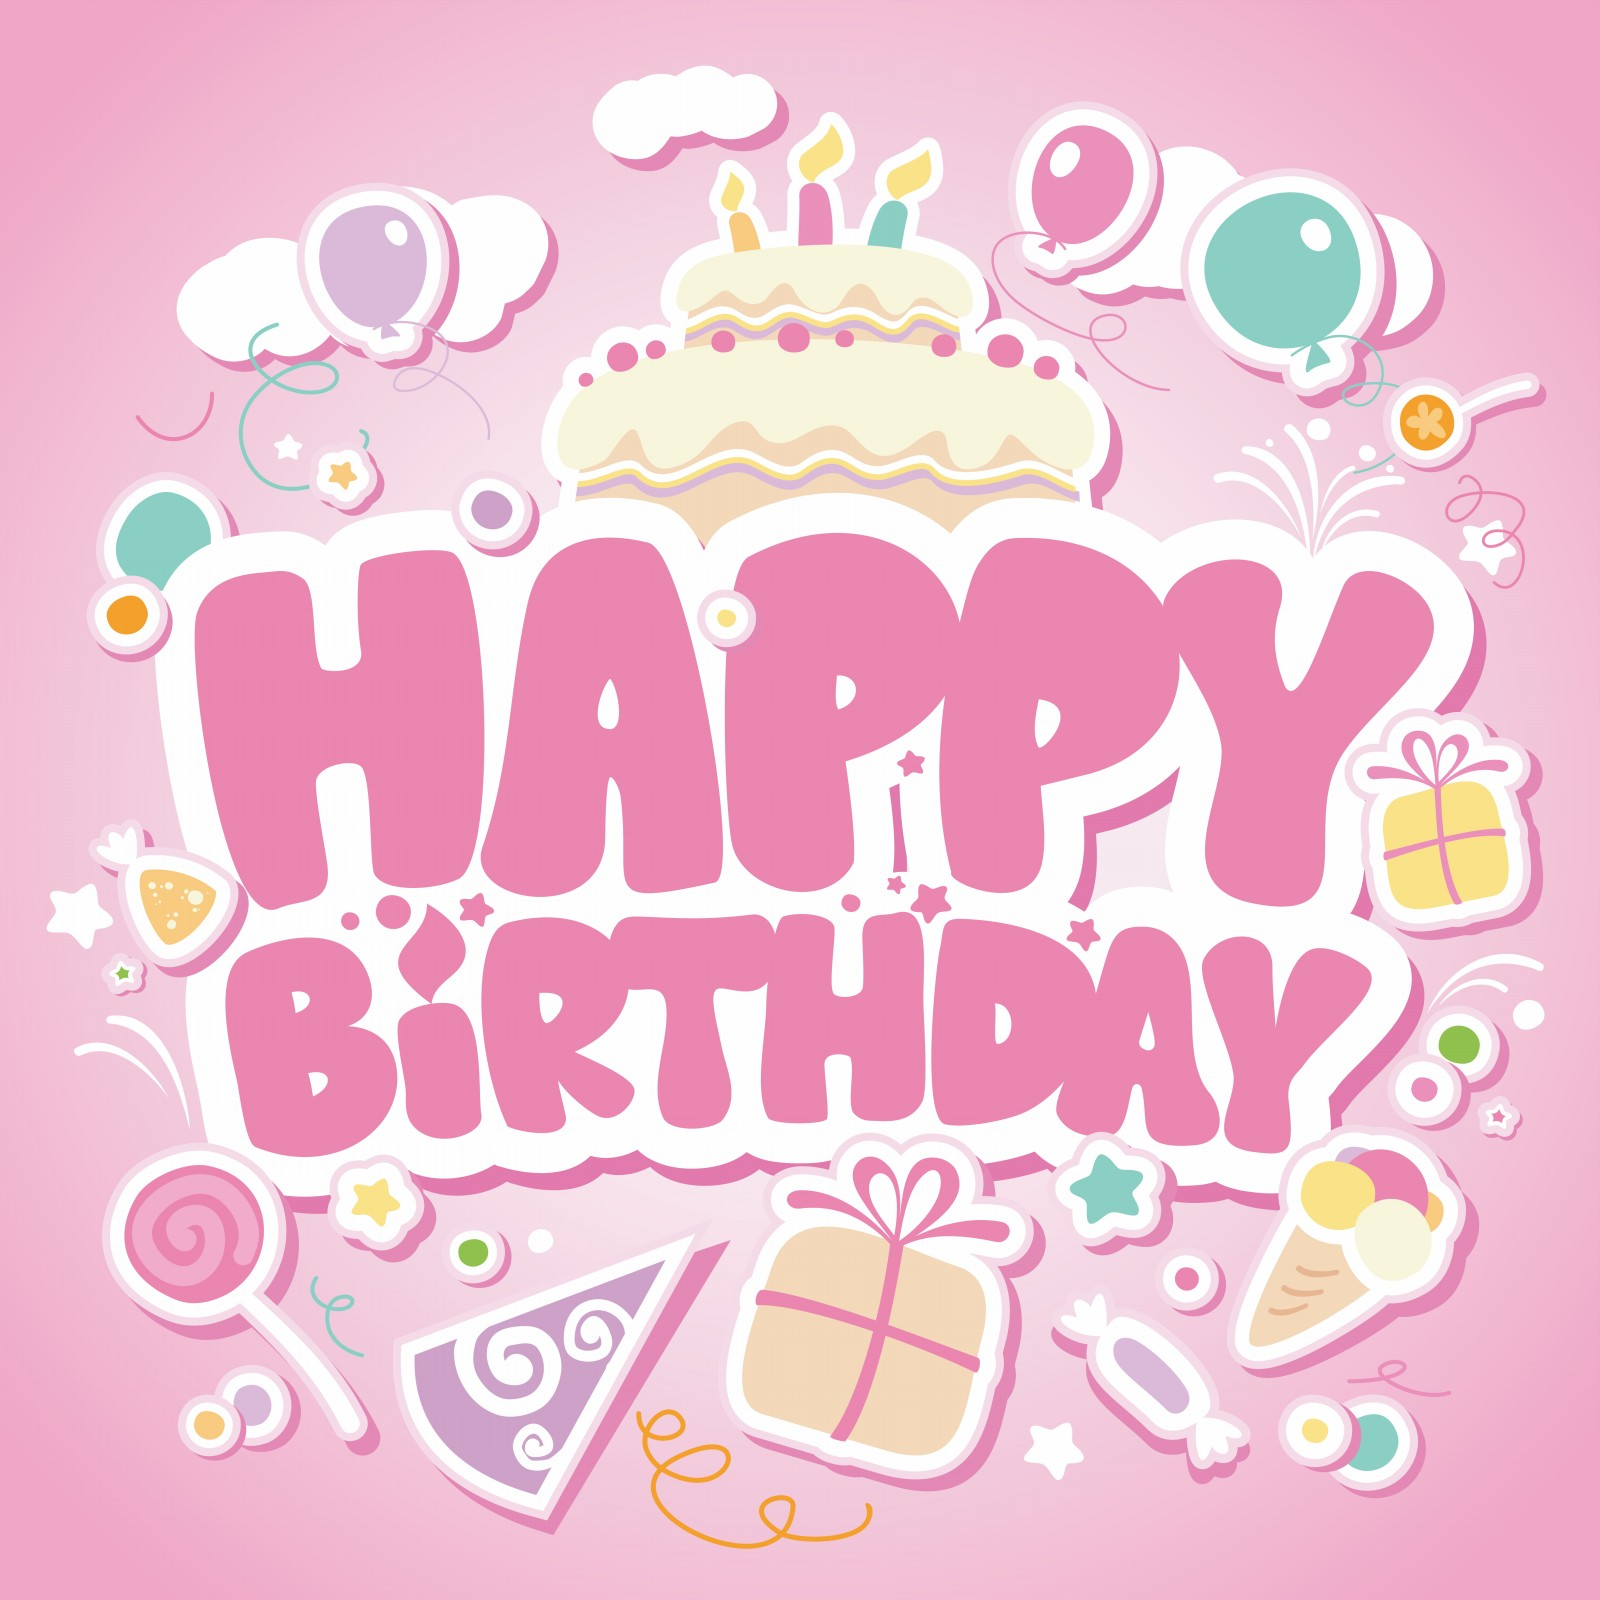 birthday girl greeting card messages ; Birthday-Greeting-Cards-For-Girls-is-one-of-the-best-idea-for-you-to-make-your-own-birthday-Card-design-1